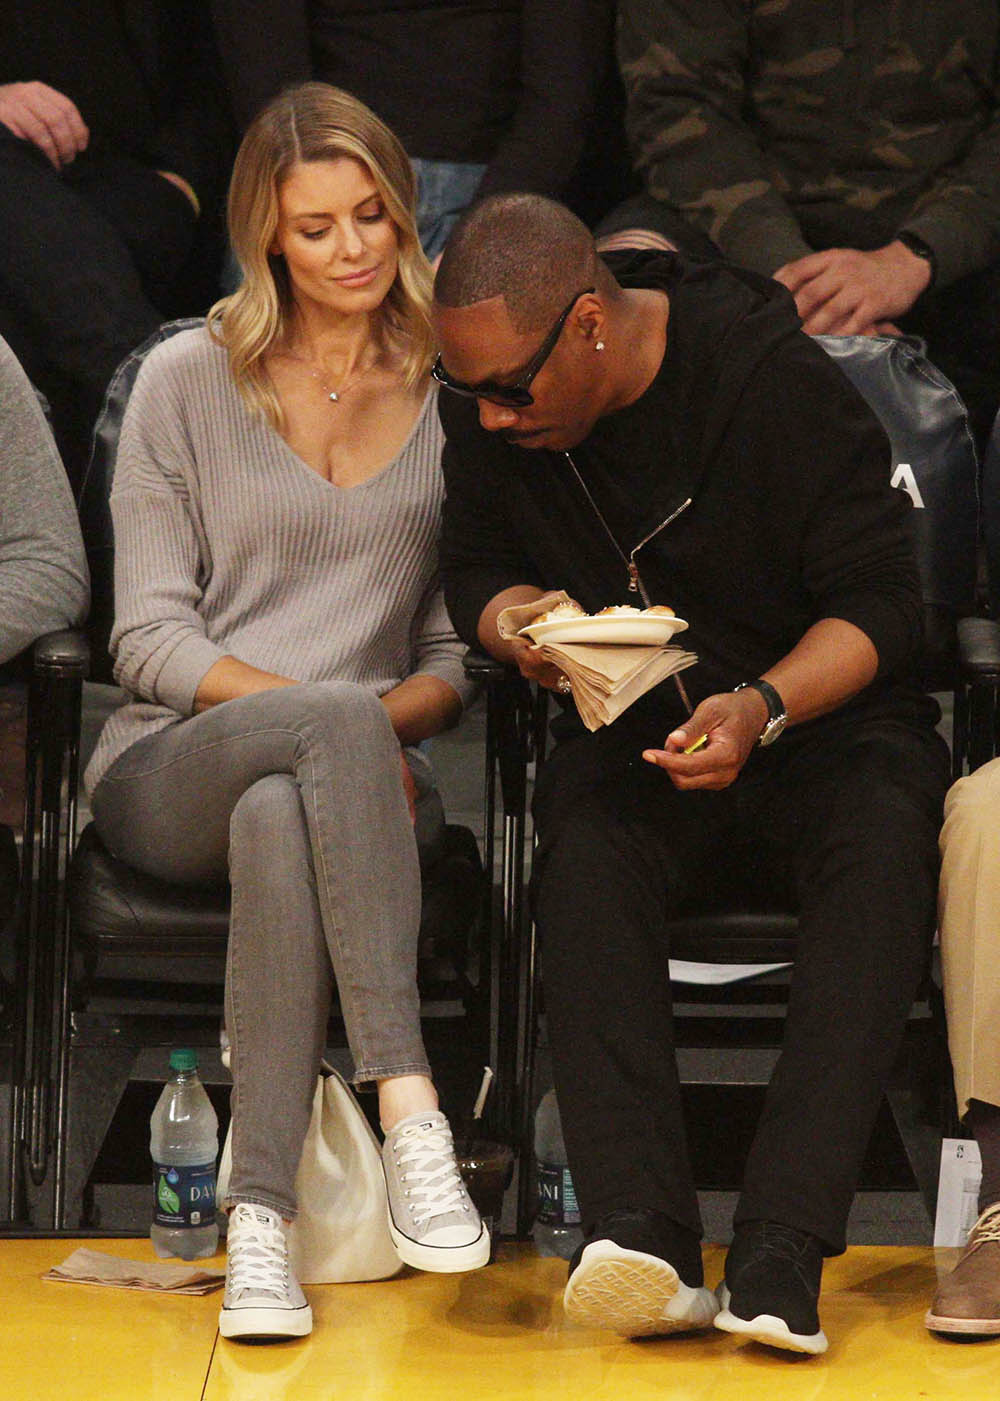 Interior Design Jobs Los Angeles Eddie Murphy & Paige Butcher At The Los Angeles Lakers